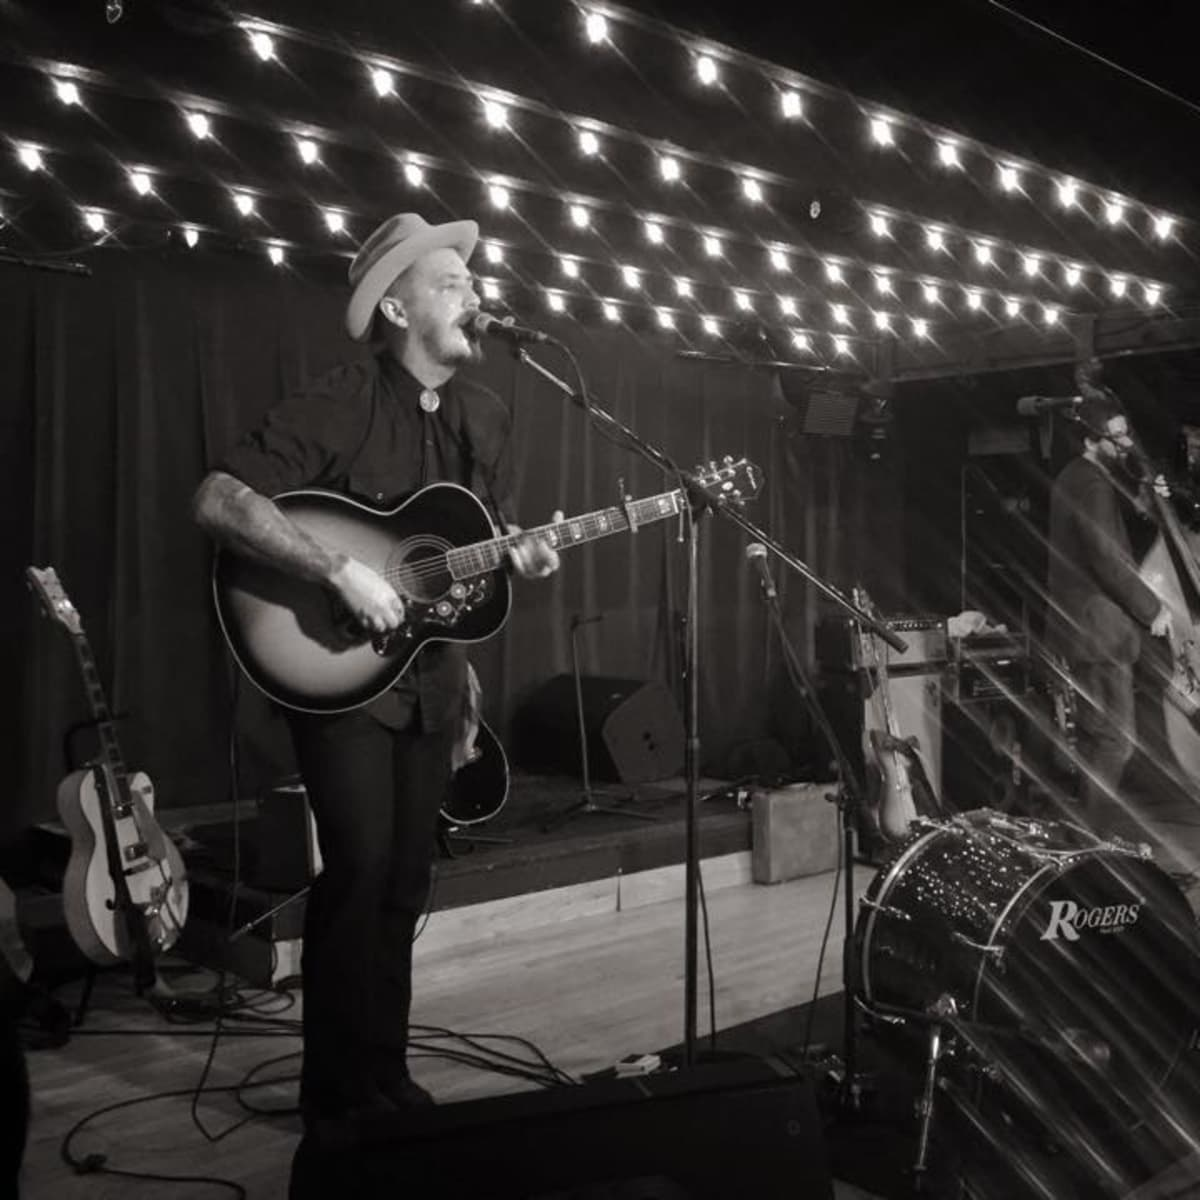 The Aardvark music club in Fort Worth